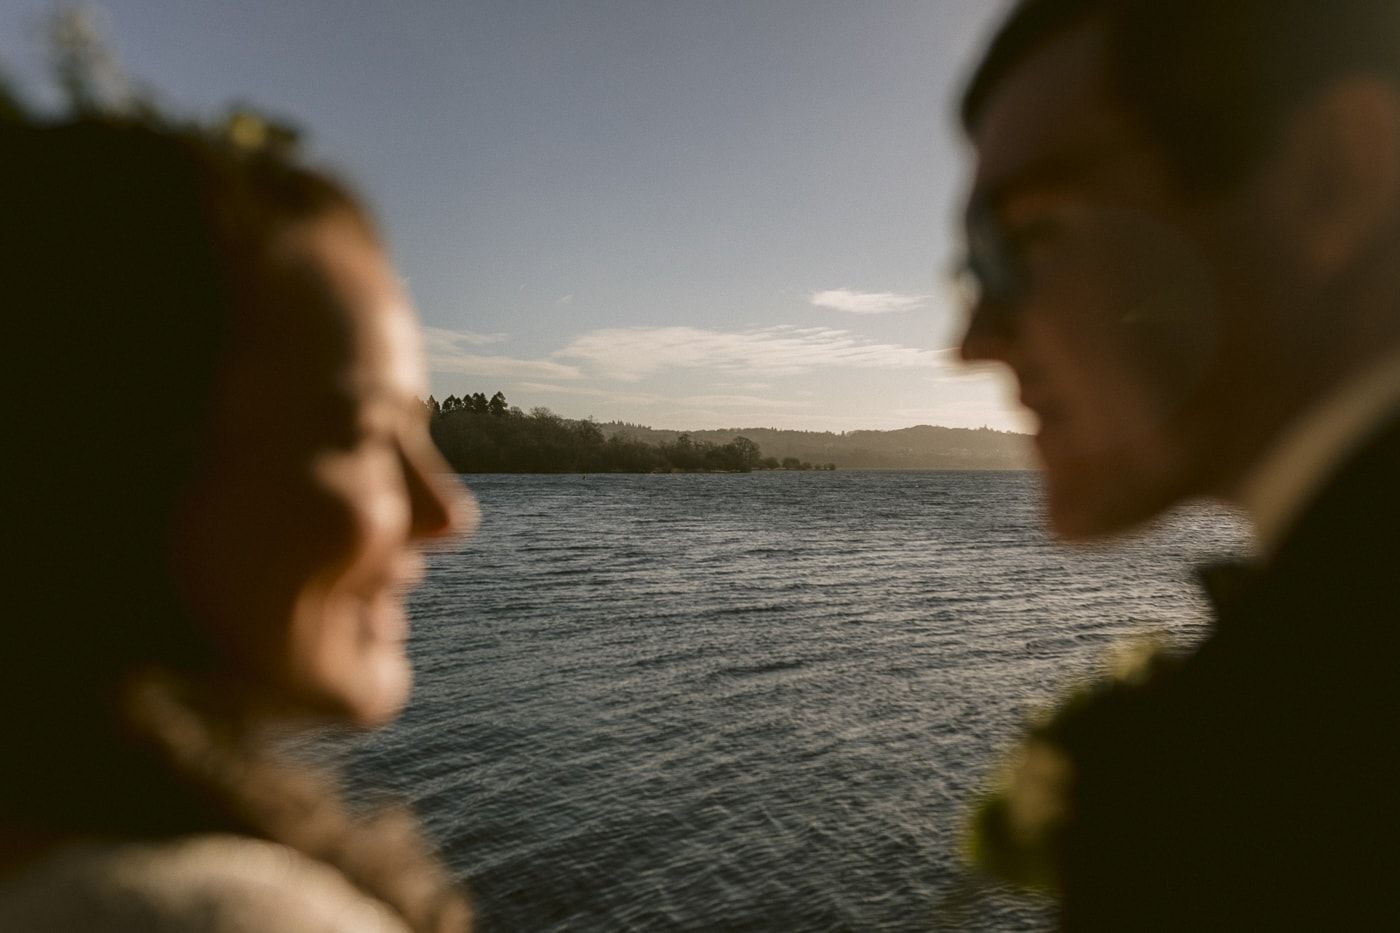 Eloping Couple stood at edge of a lake on their elopement adventure